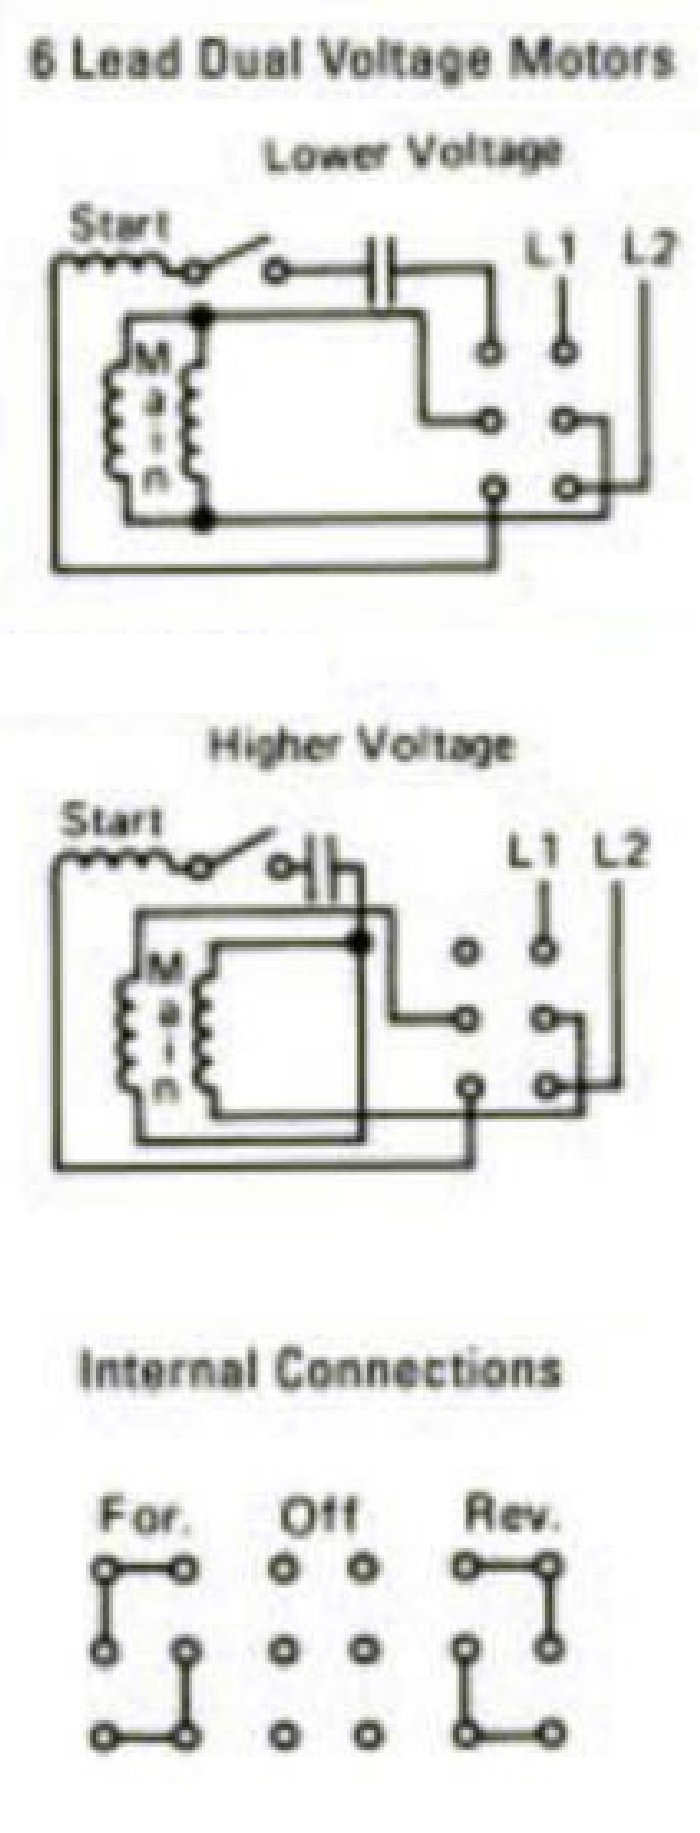 Boat Lift Switch Wiring - Need Help - The Hull Truth